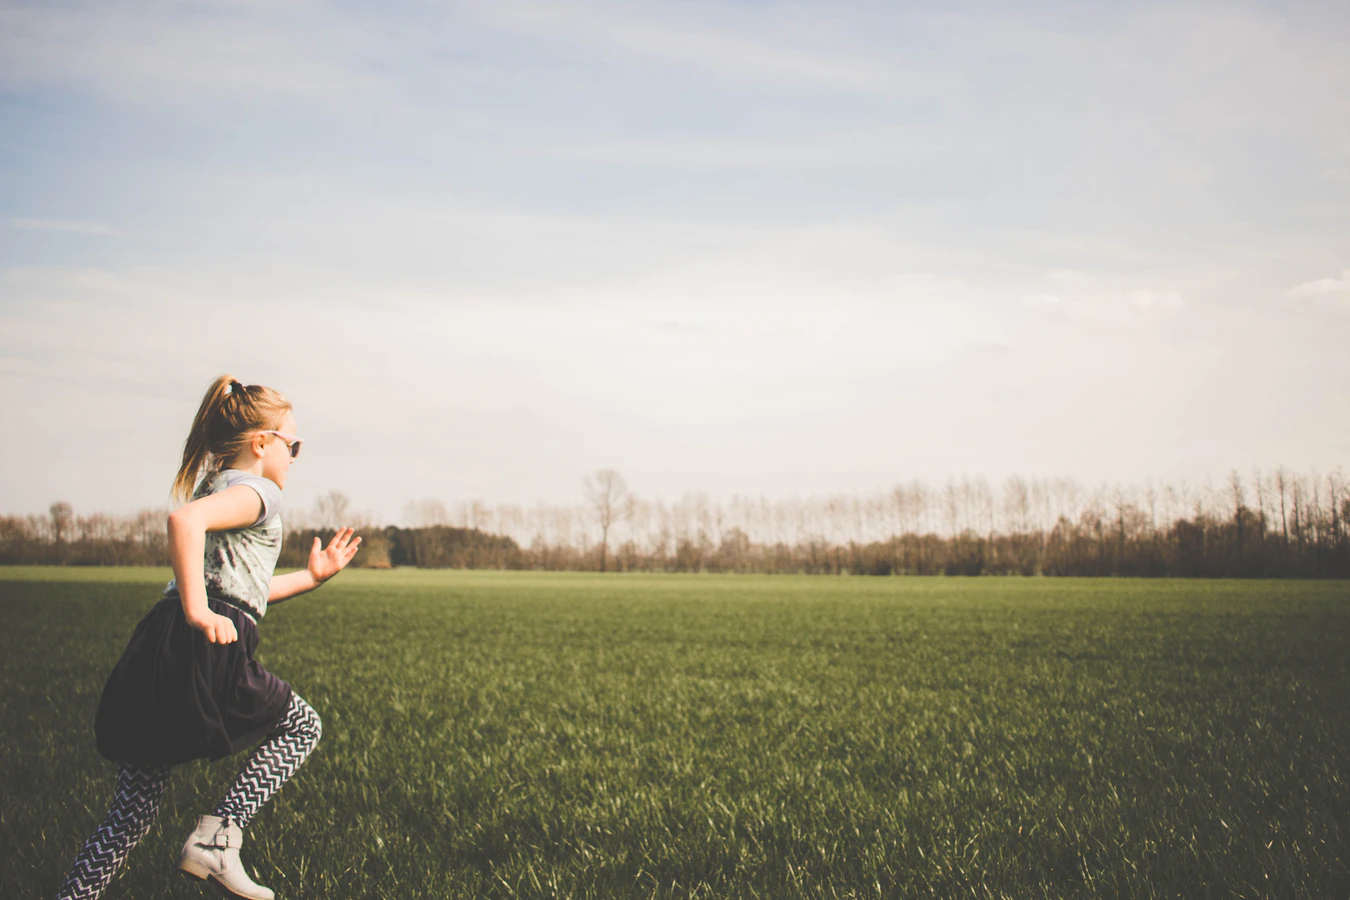 Benefit from Exercising with Kids